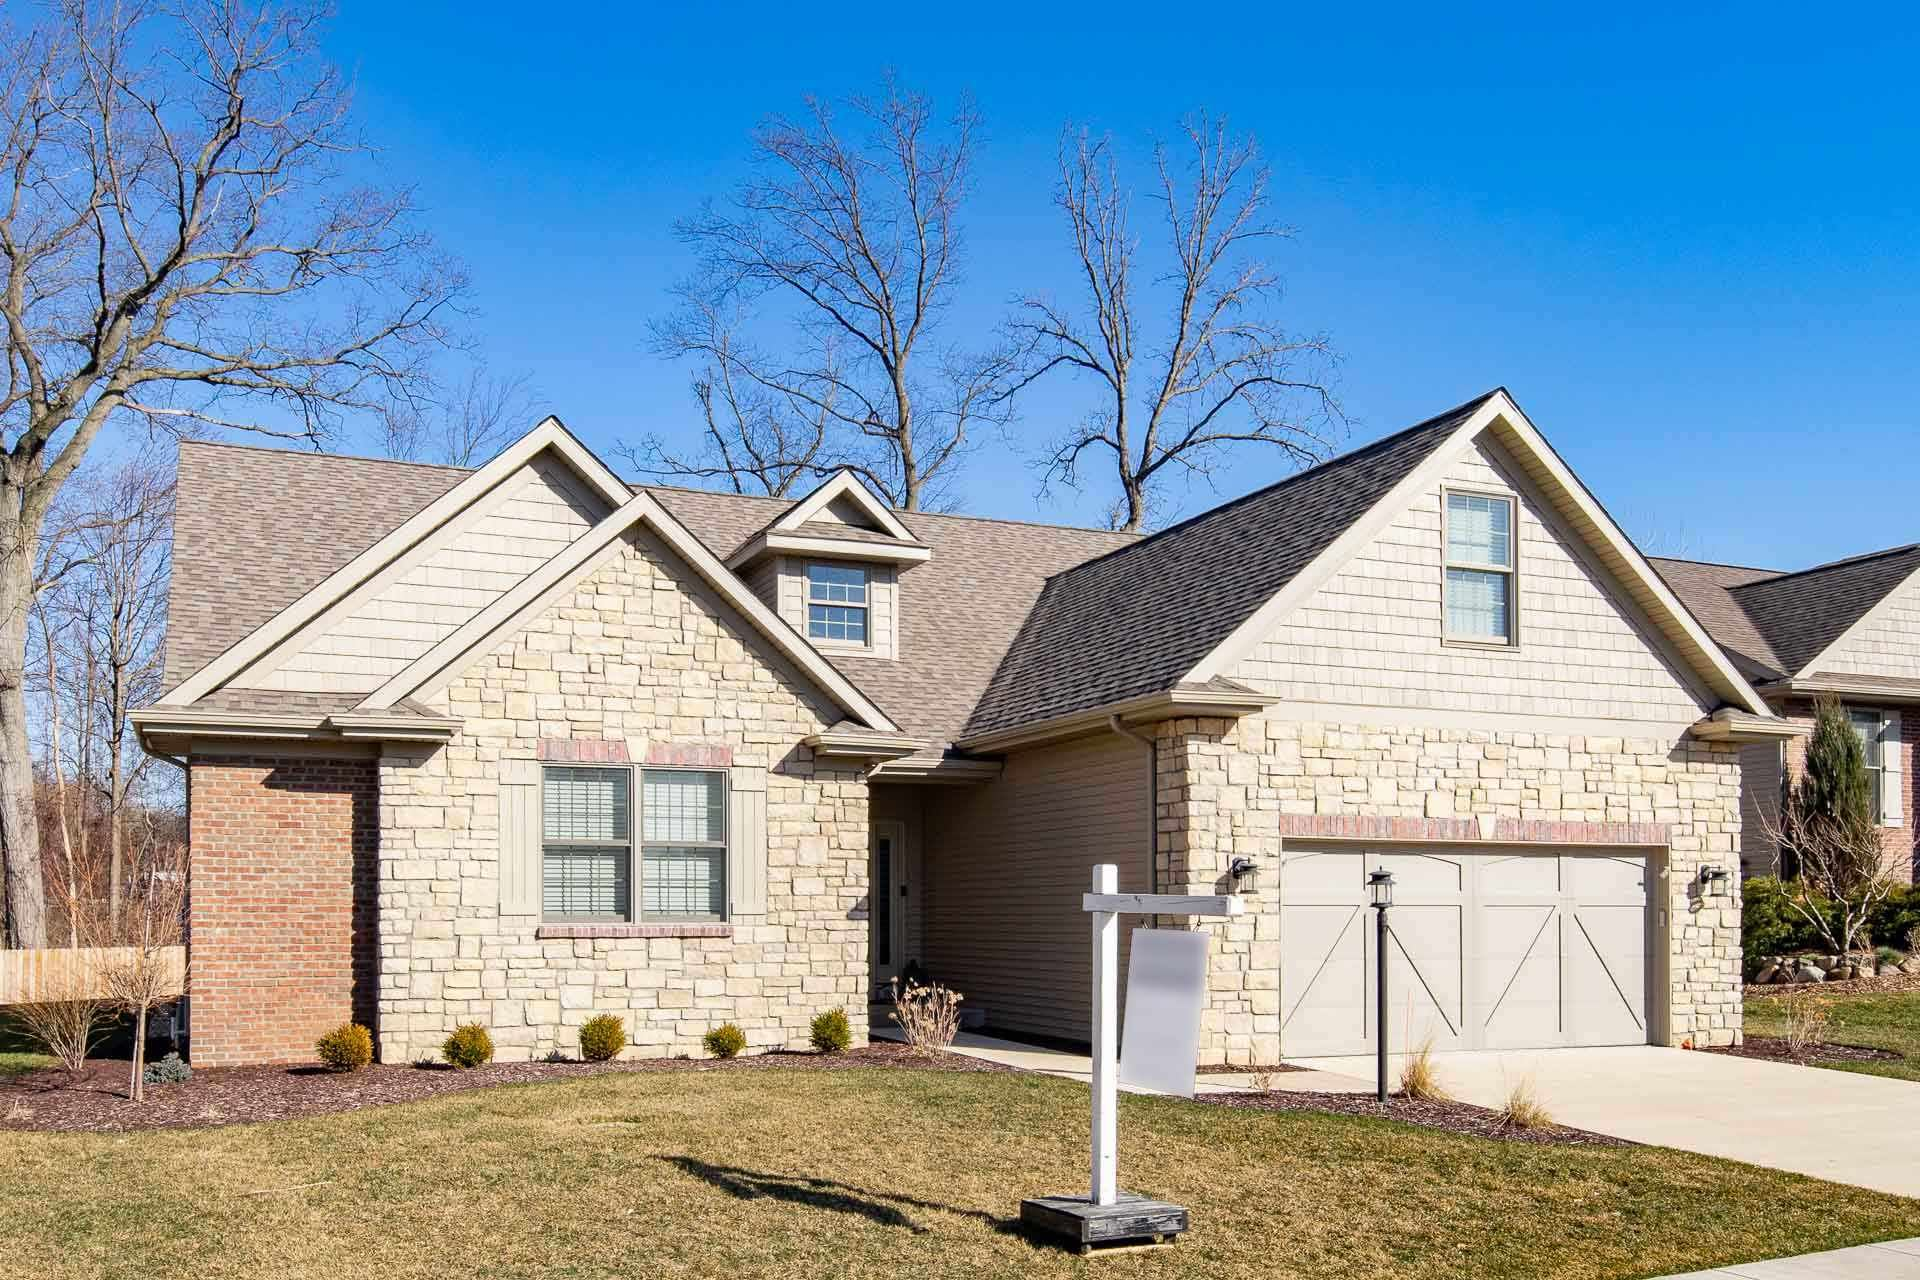 19326 Foley Circle, South Bend, IN 46637 - #: 202106900